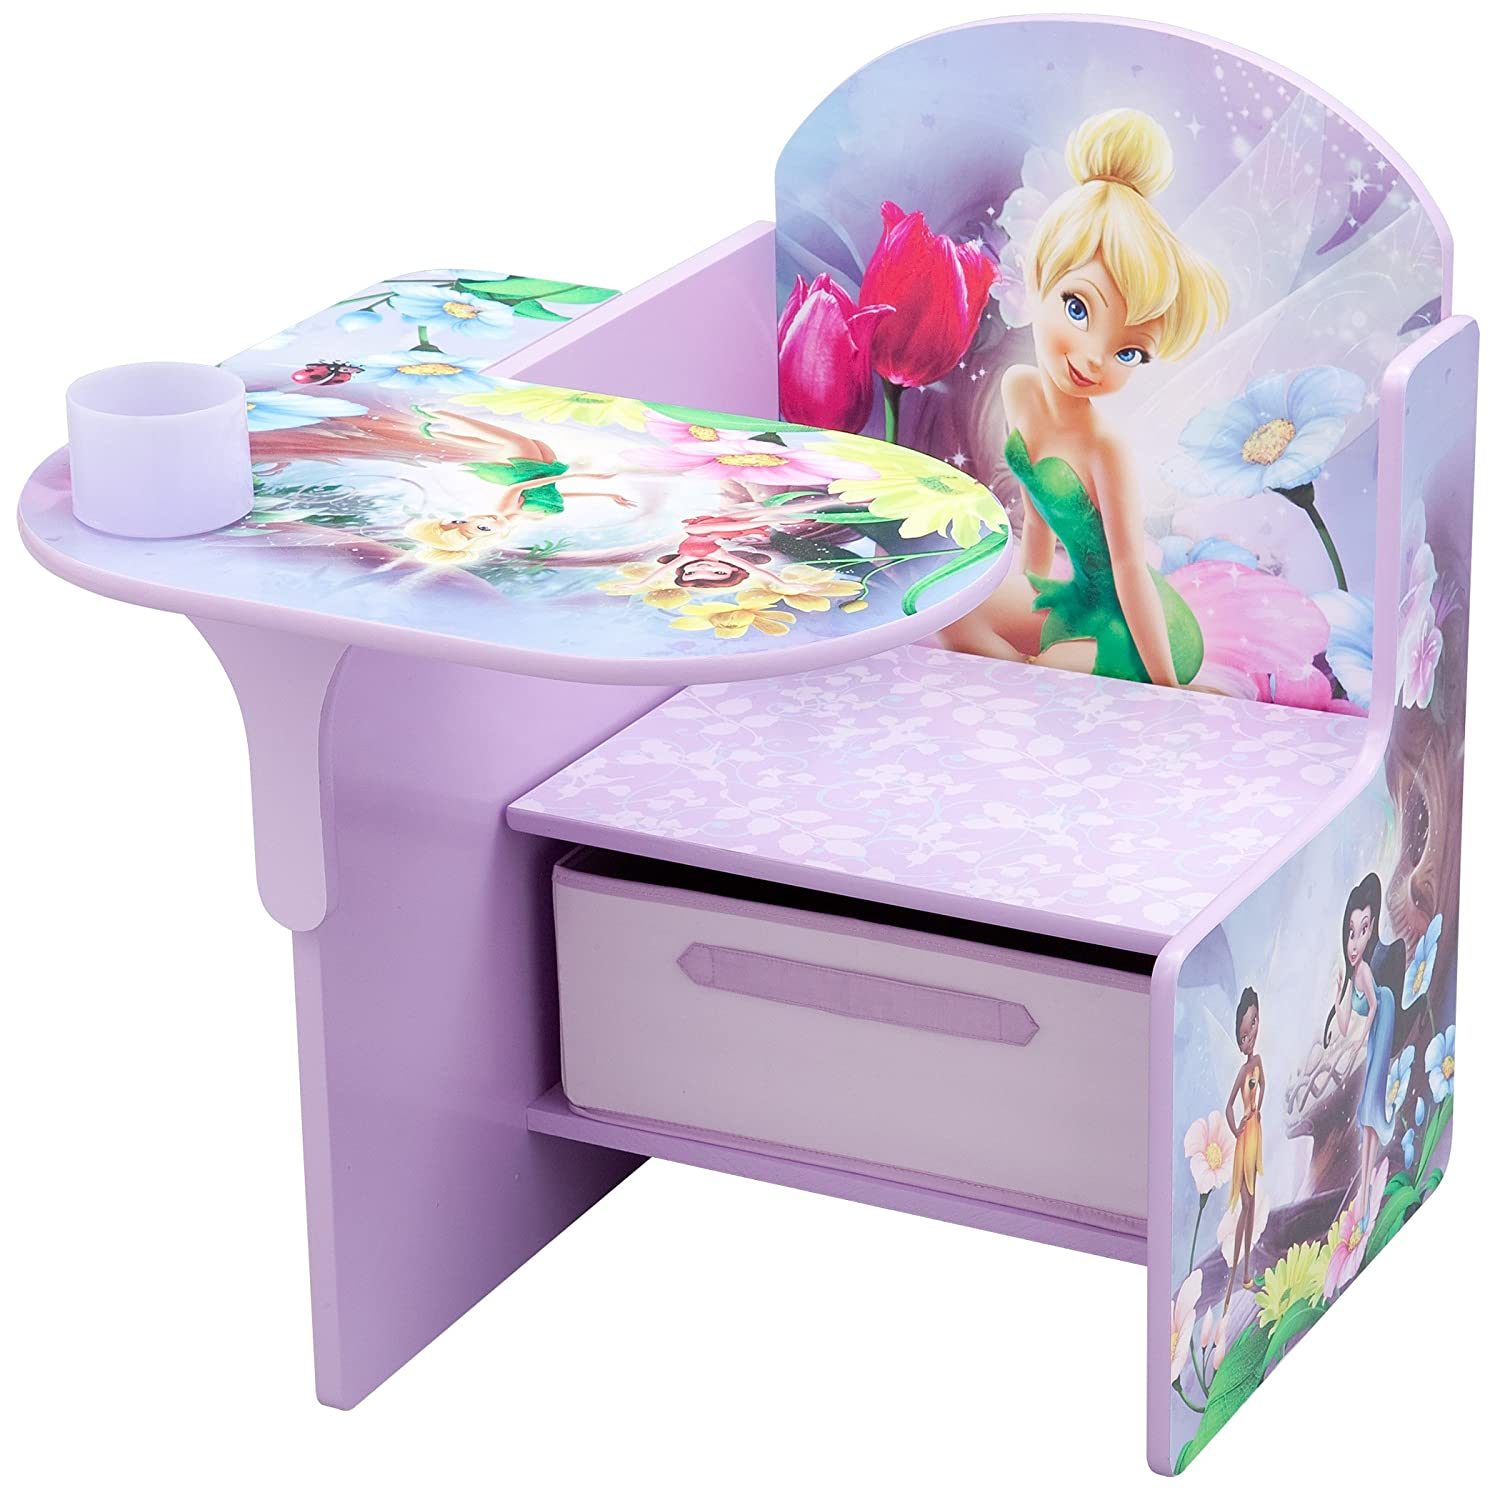 Tinker bell furniture totally kids totally bedrooms for Tinkerbell bedroom furniture